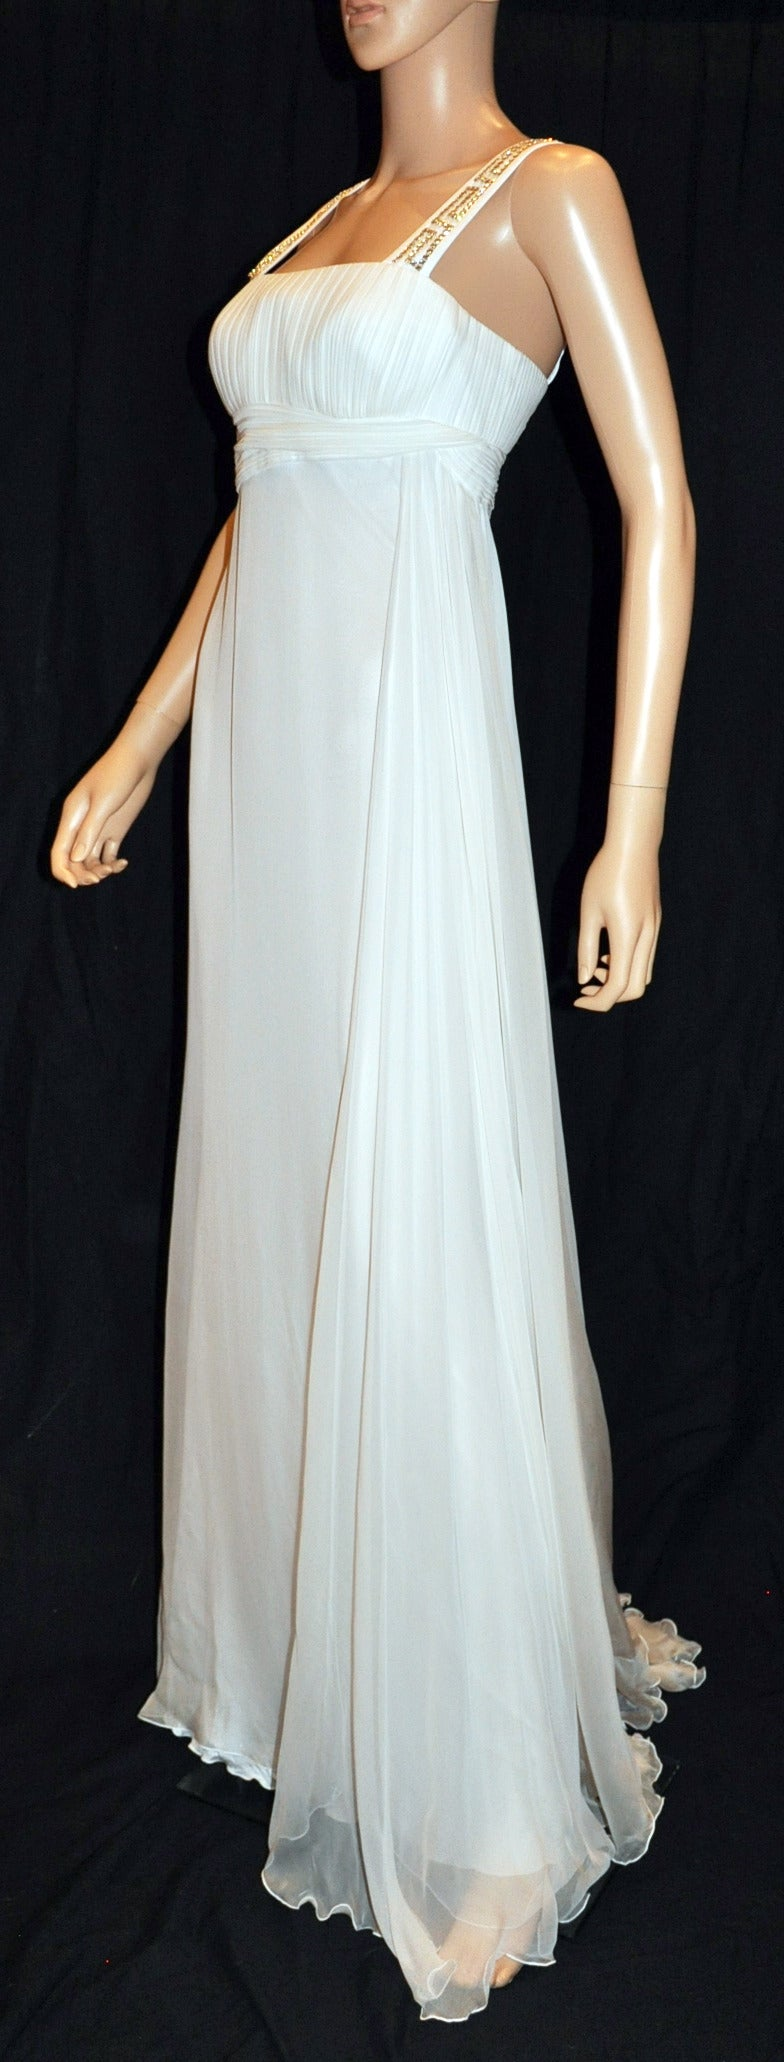 New Versace Crystal Embellished White Silk Gown 5